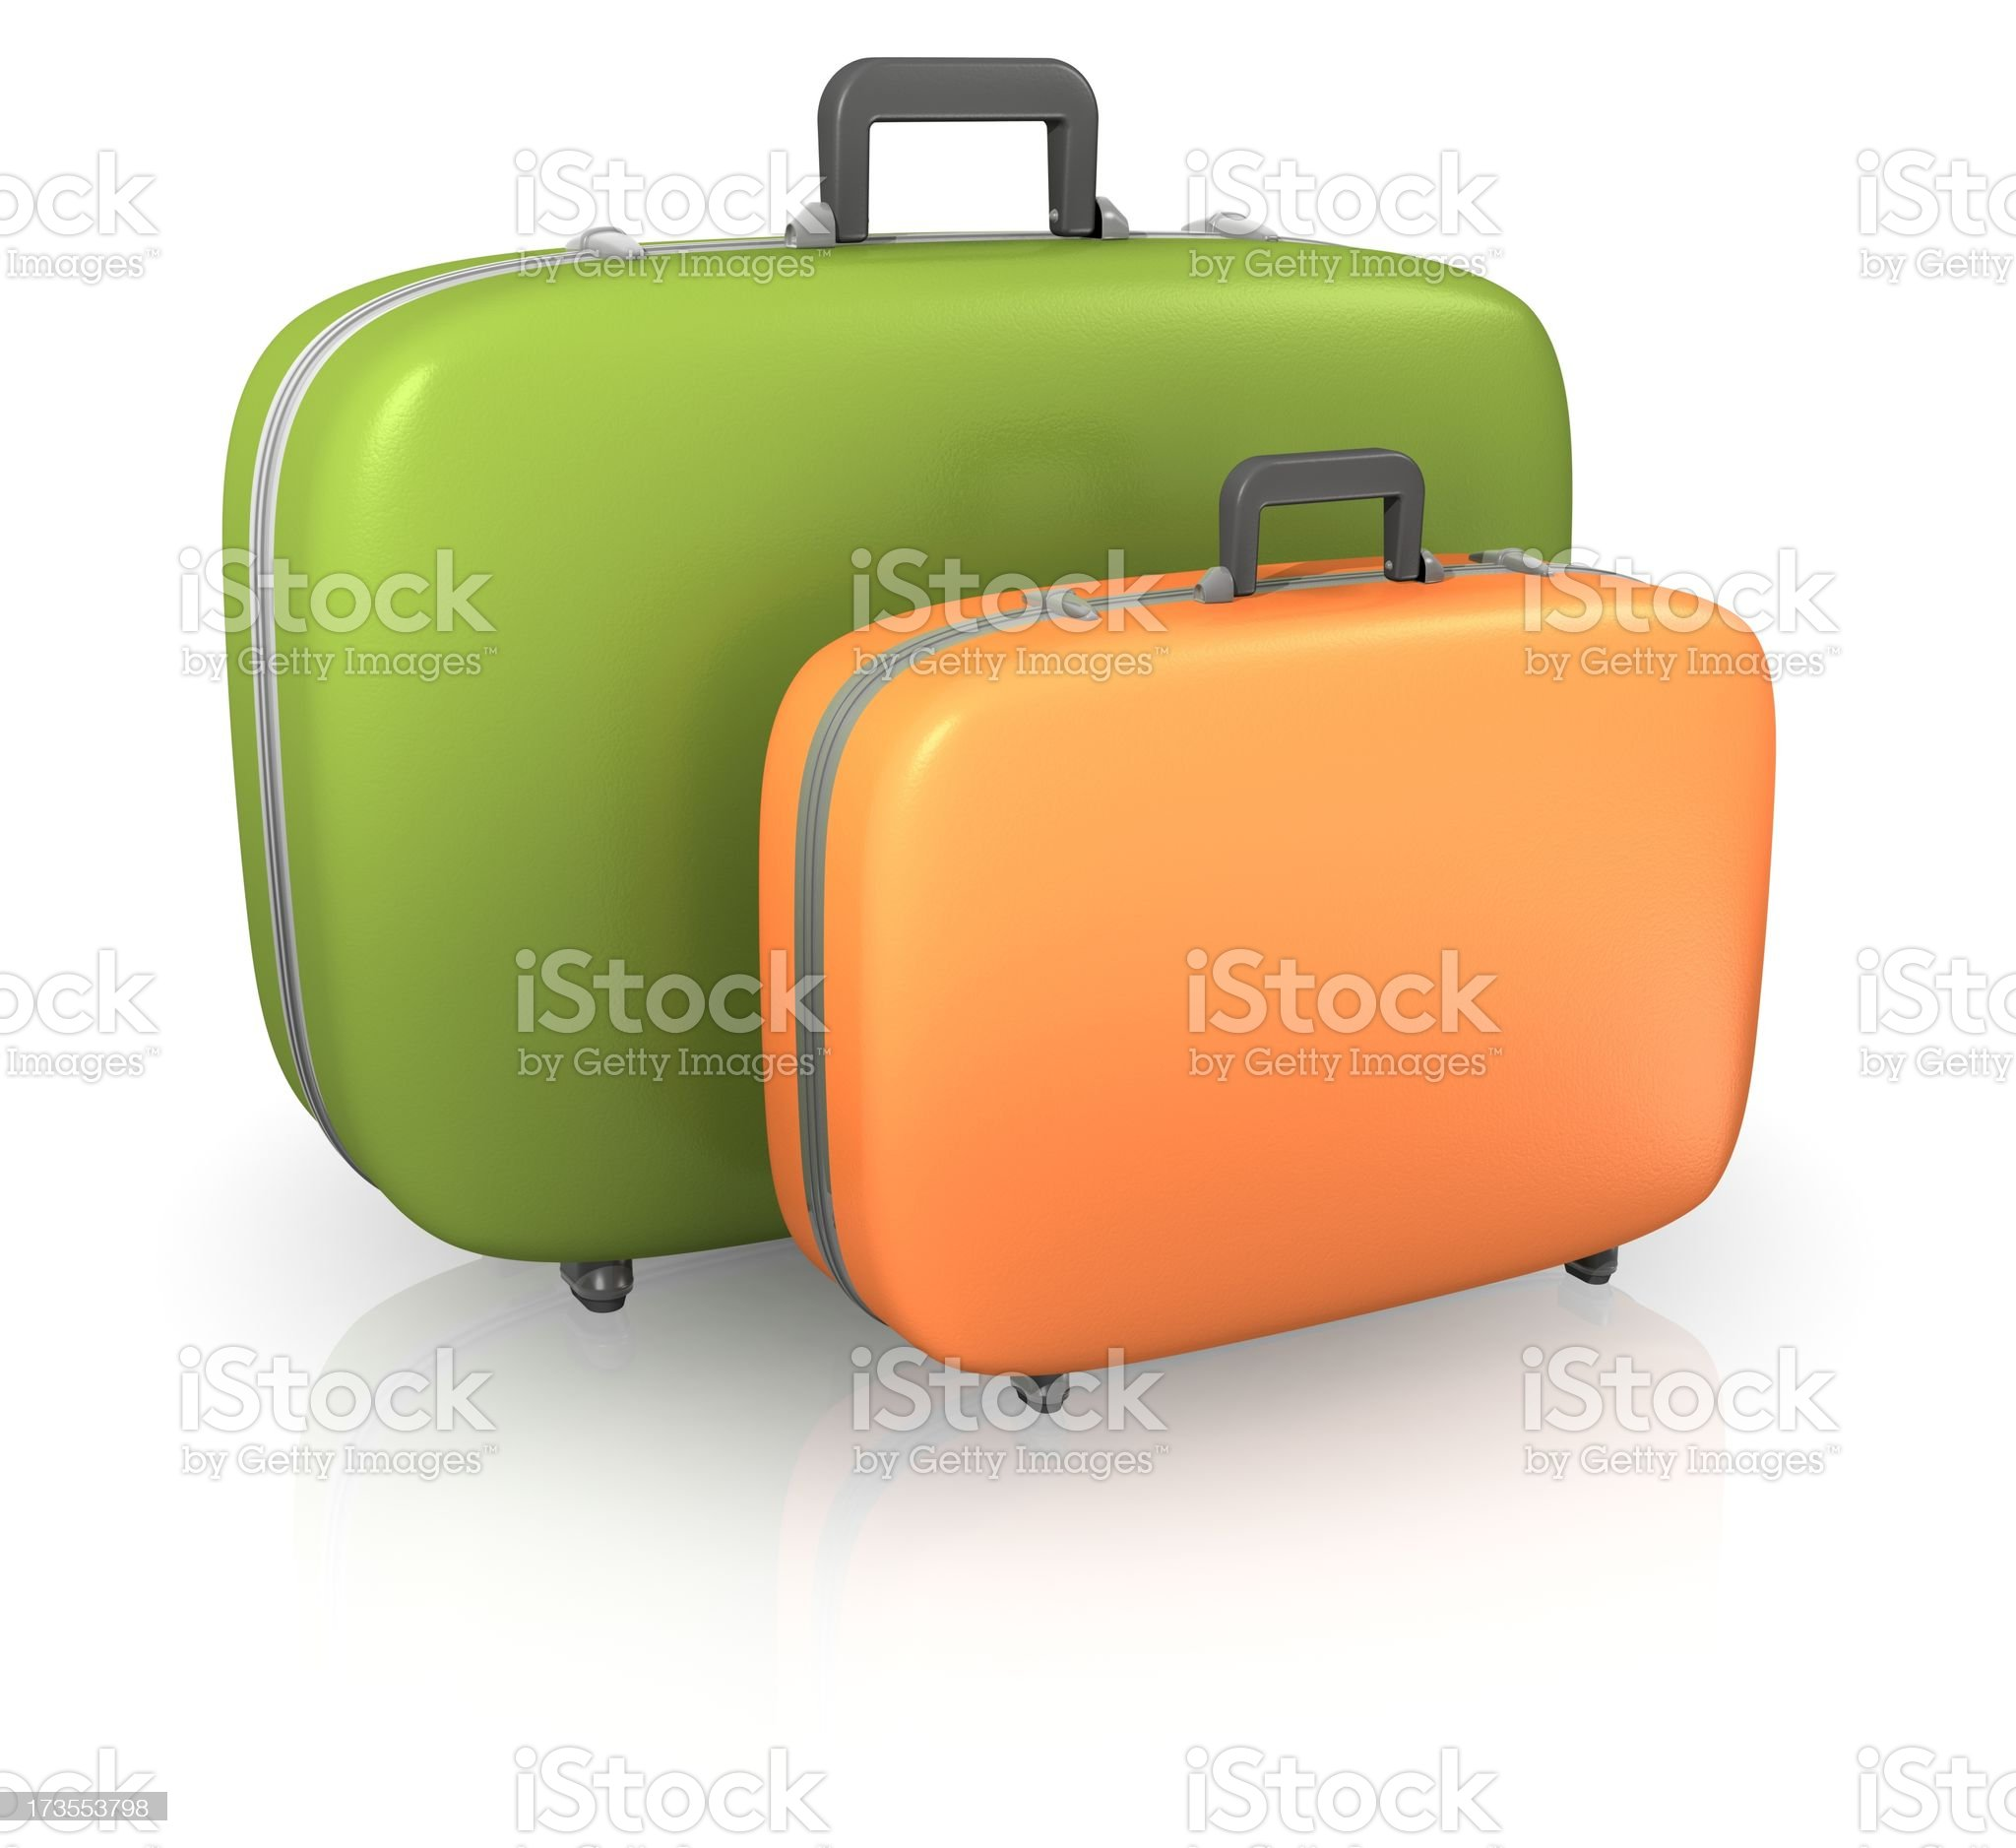 Suitcases royalty-free stock photo